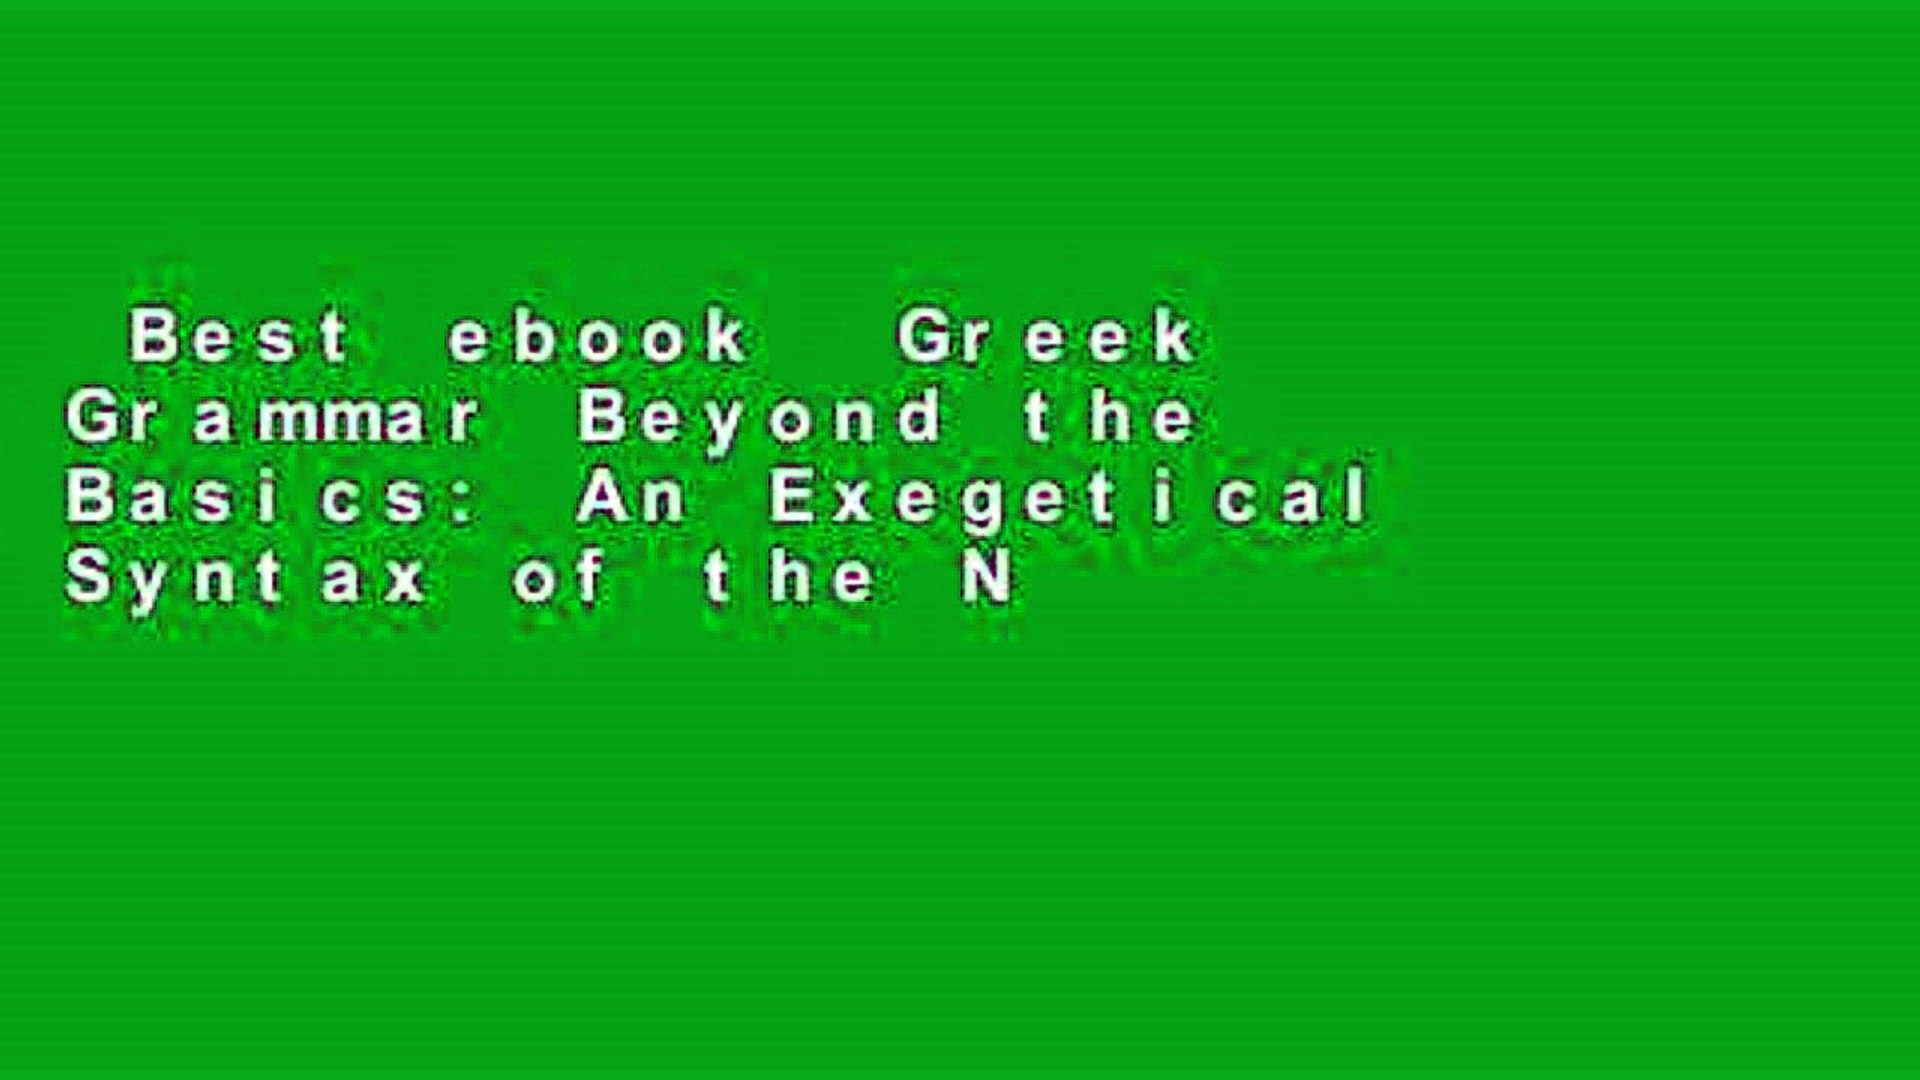 Best ebook  Greek Grammar Beyond the Basics: An Exegetical Syntax of the New Testament  Review